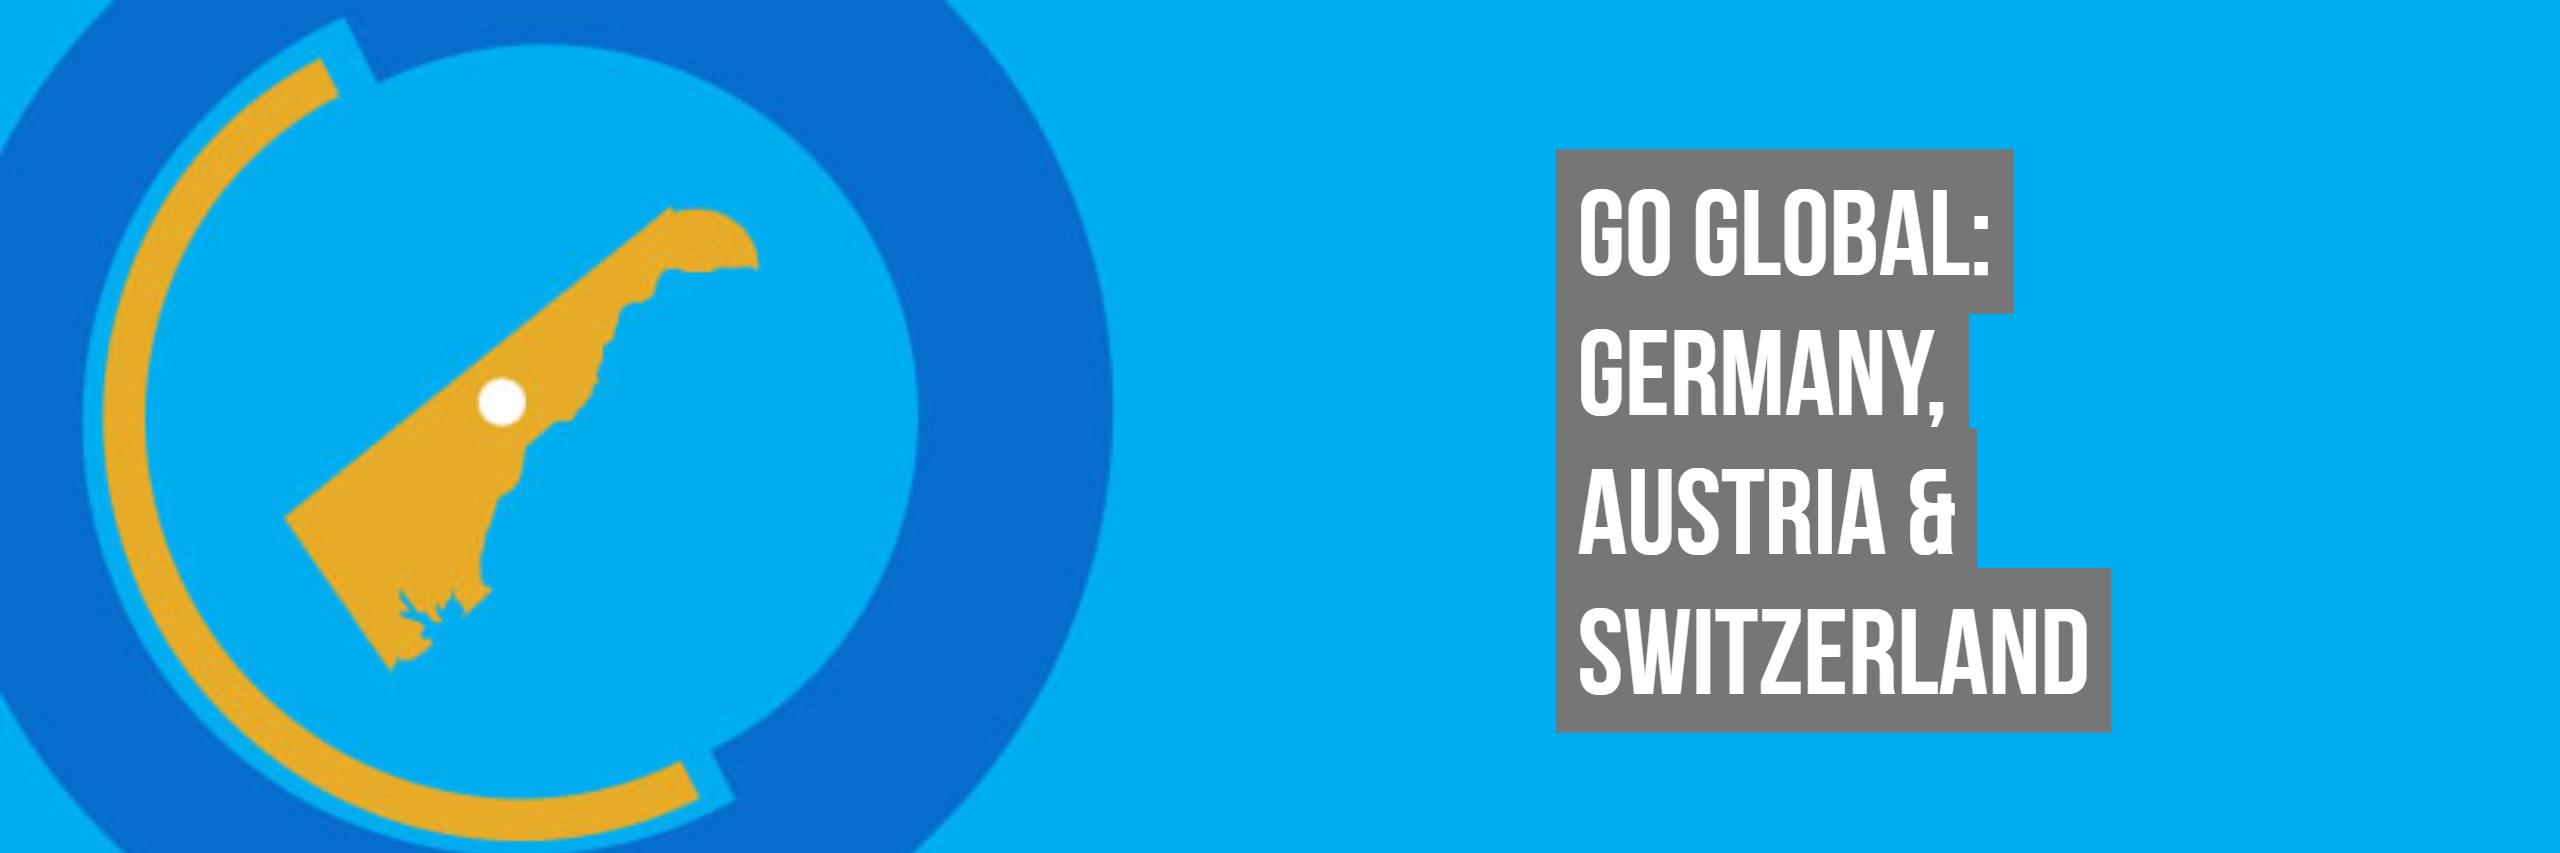 Go Global: Germany, Austria and Switzerland Trade Mission Coming Up